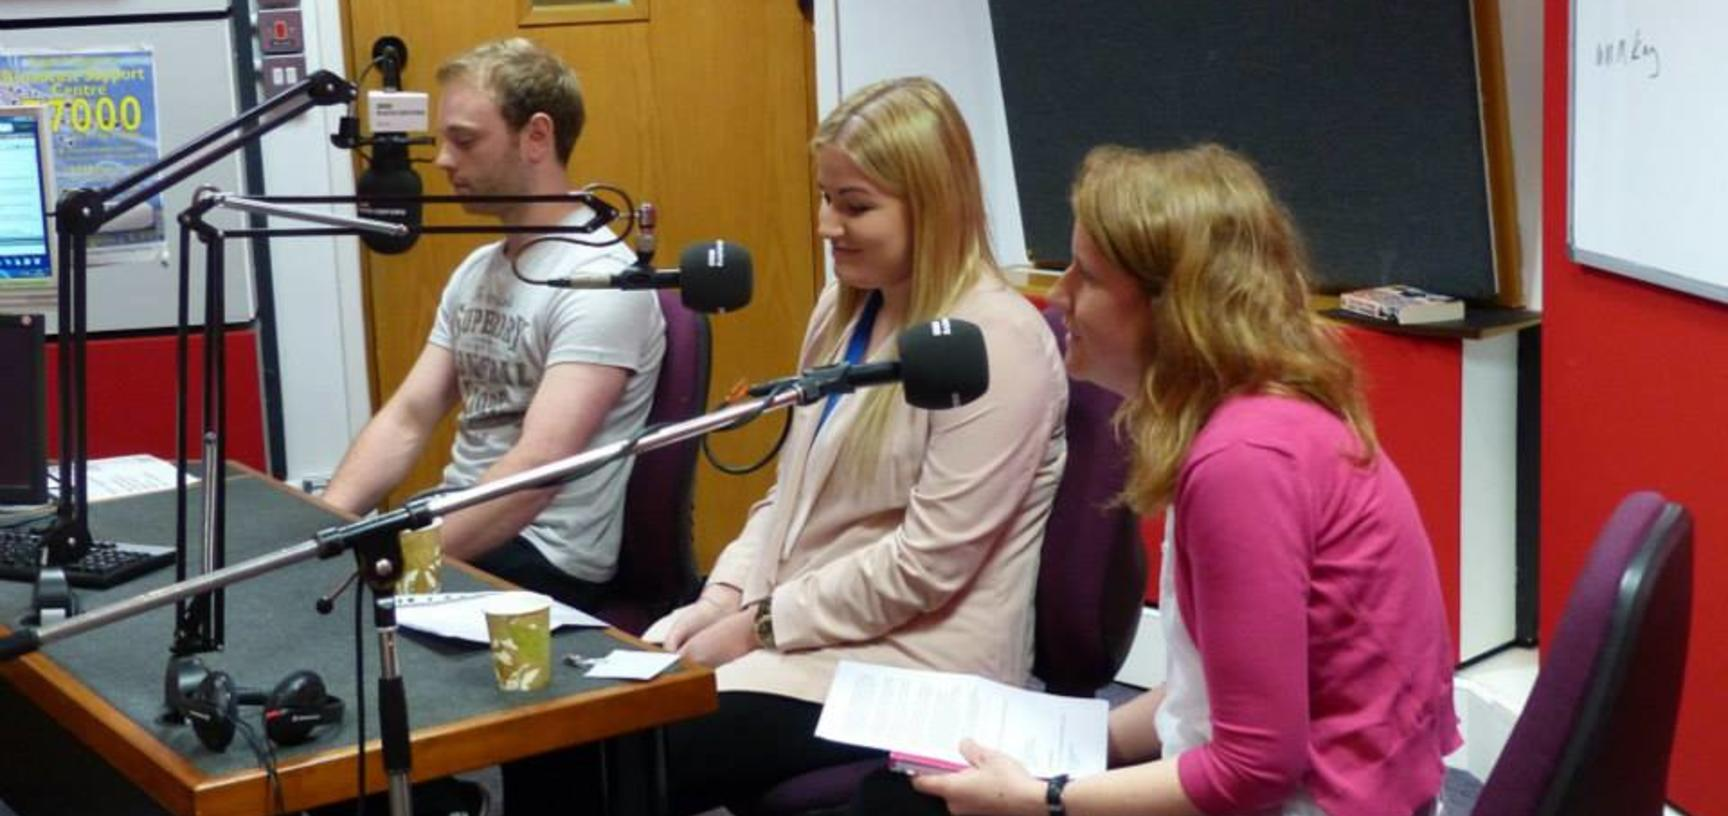 University of Oxford apprentices at Radio Oxford talking about Apprenticeships